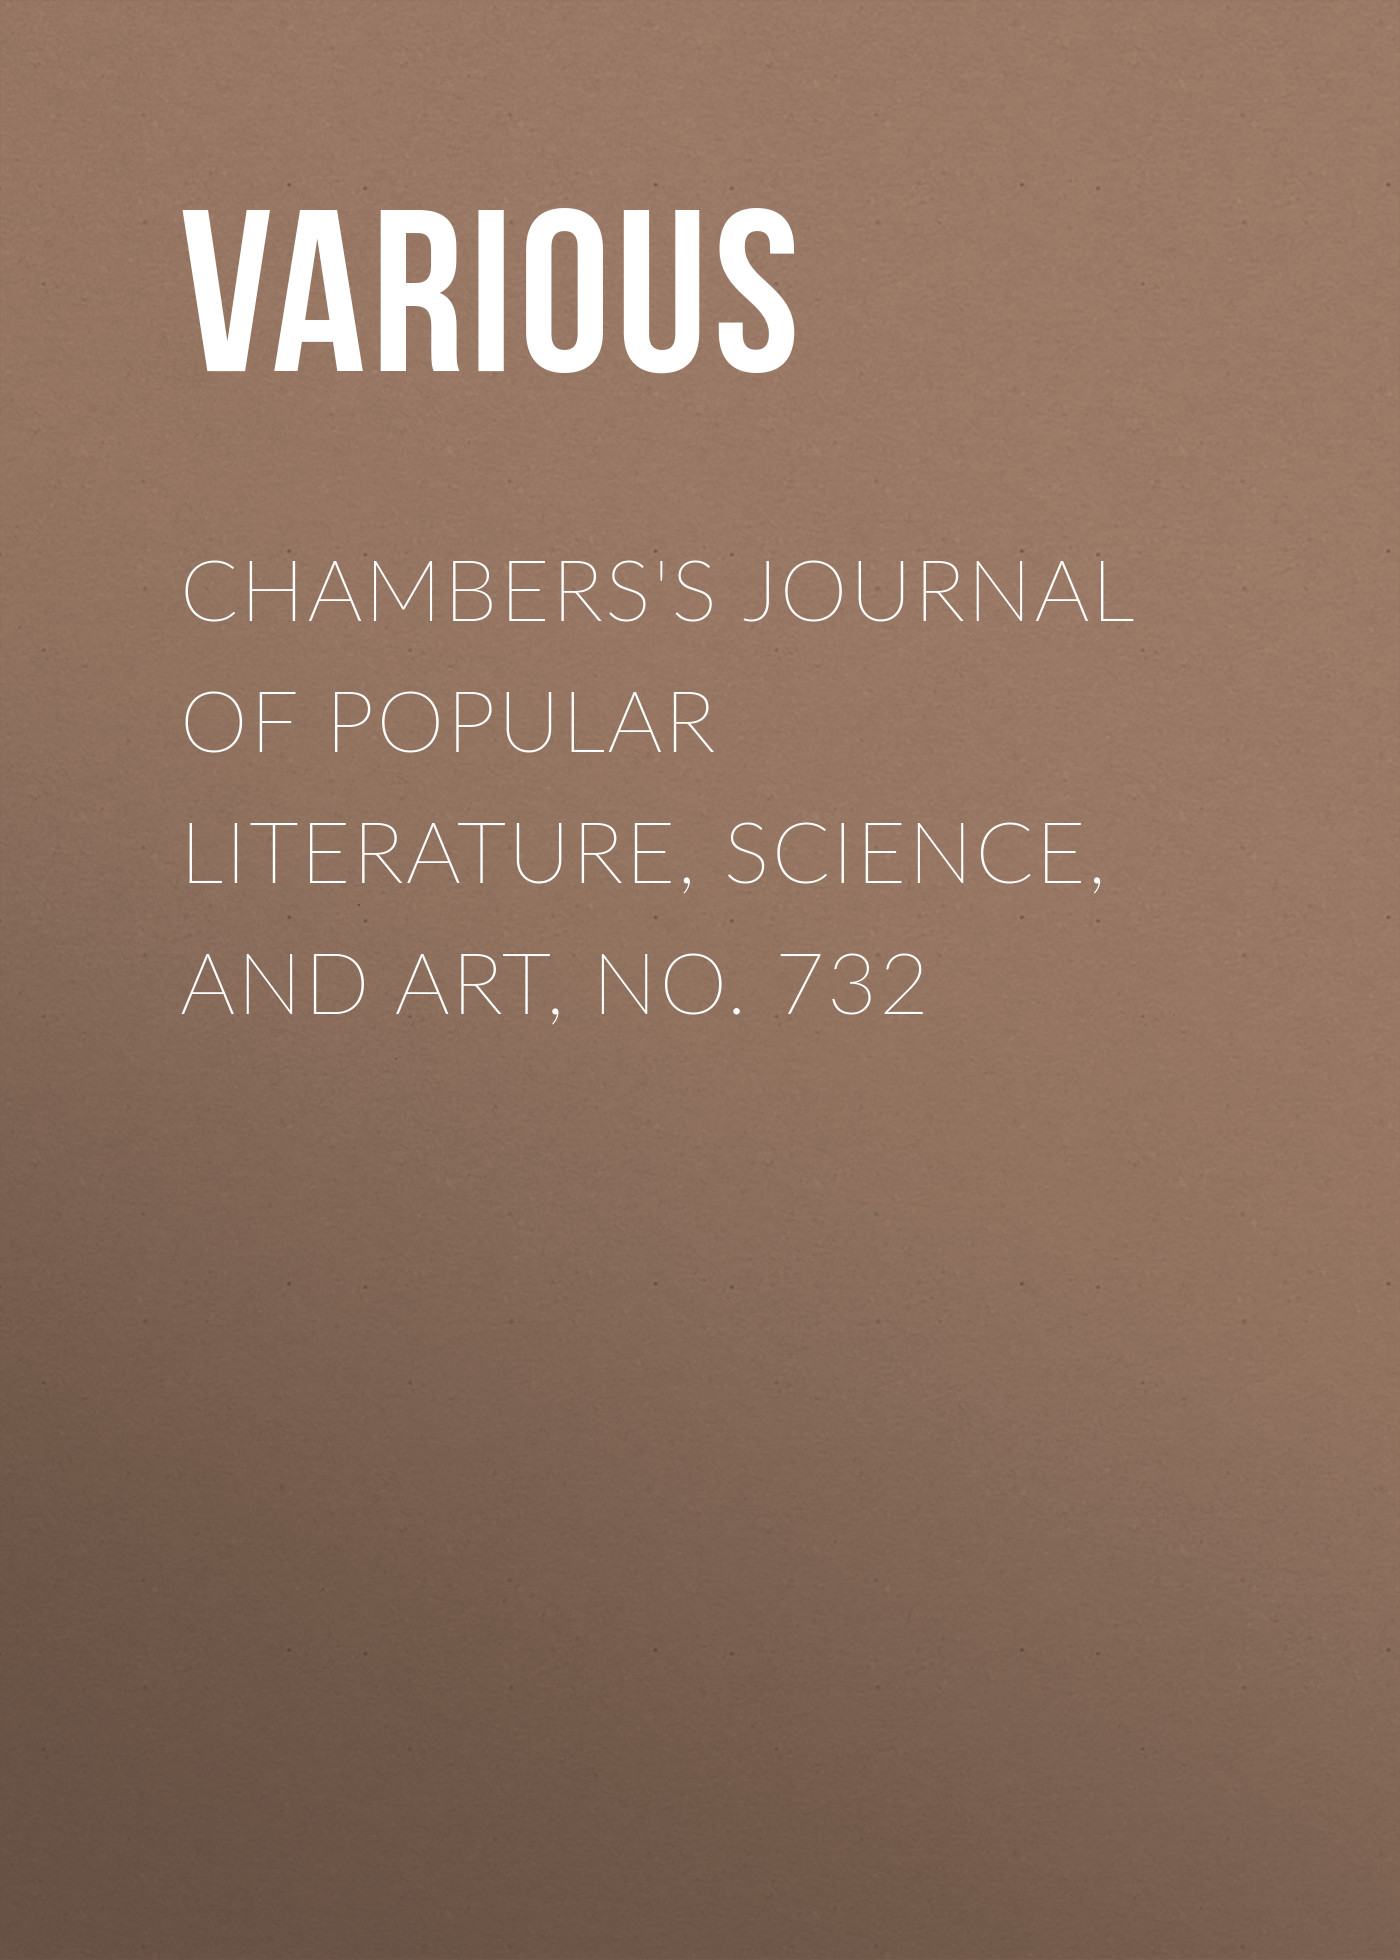 Фото - Various Chambers's Journal of Popular Literature, Science, and Art, No. 732 various chambers s journal of popular literature science and art no 692